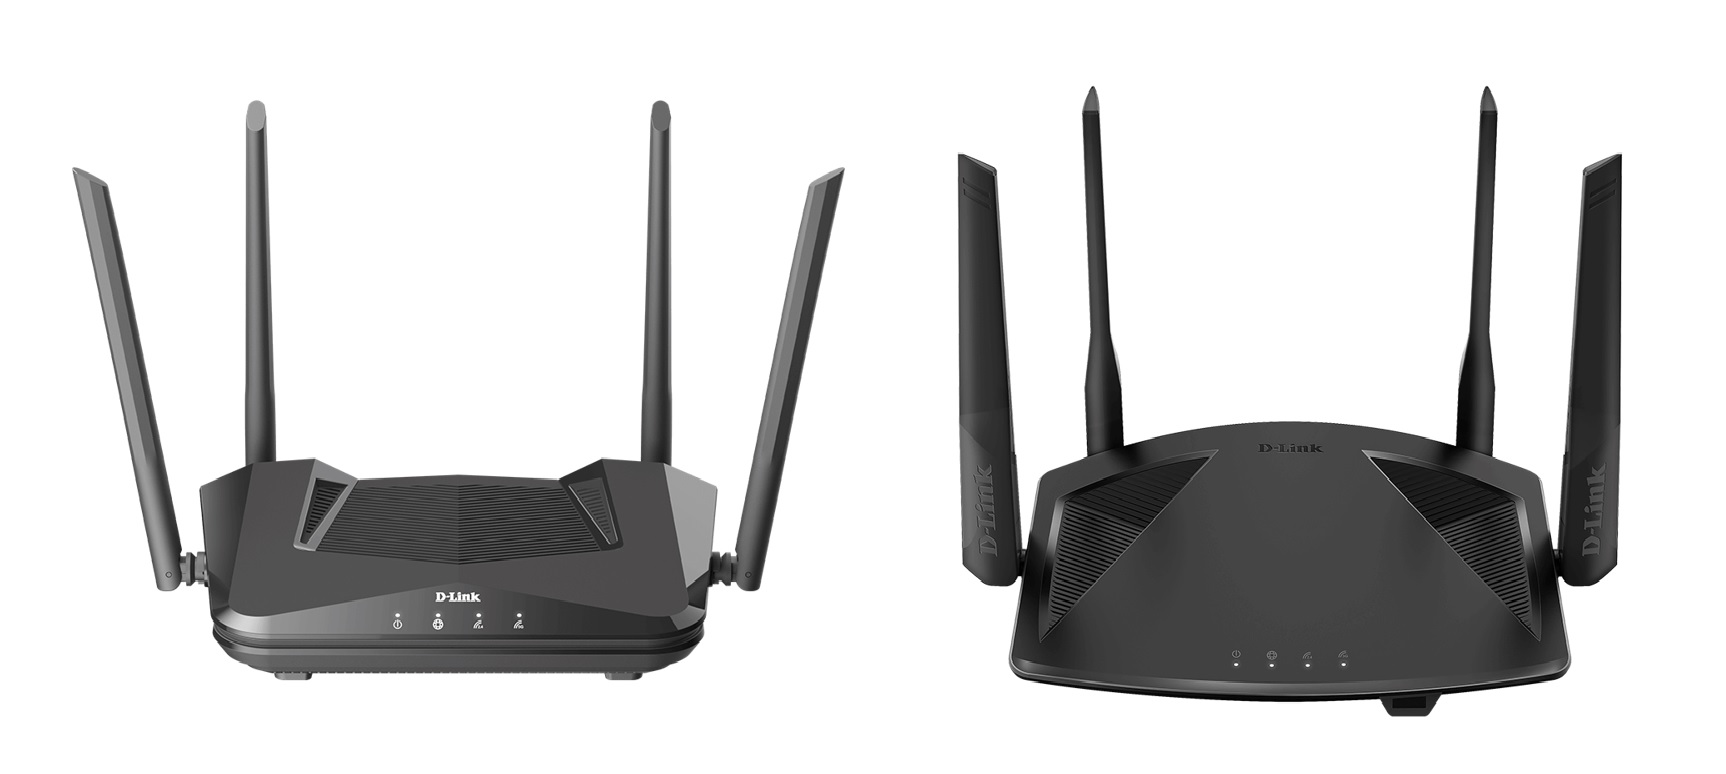 Wi-Fi 6: D-Link annuncia due nuovi router